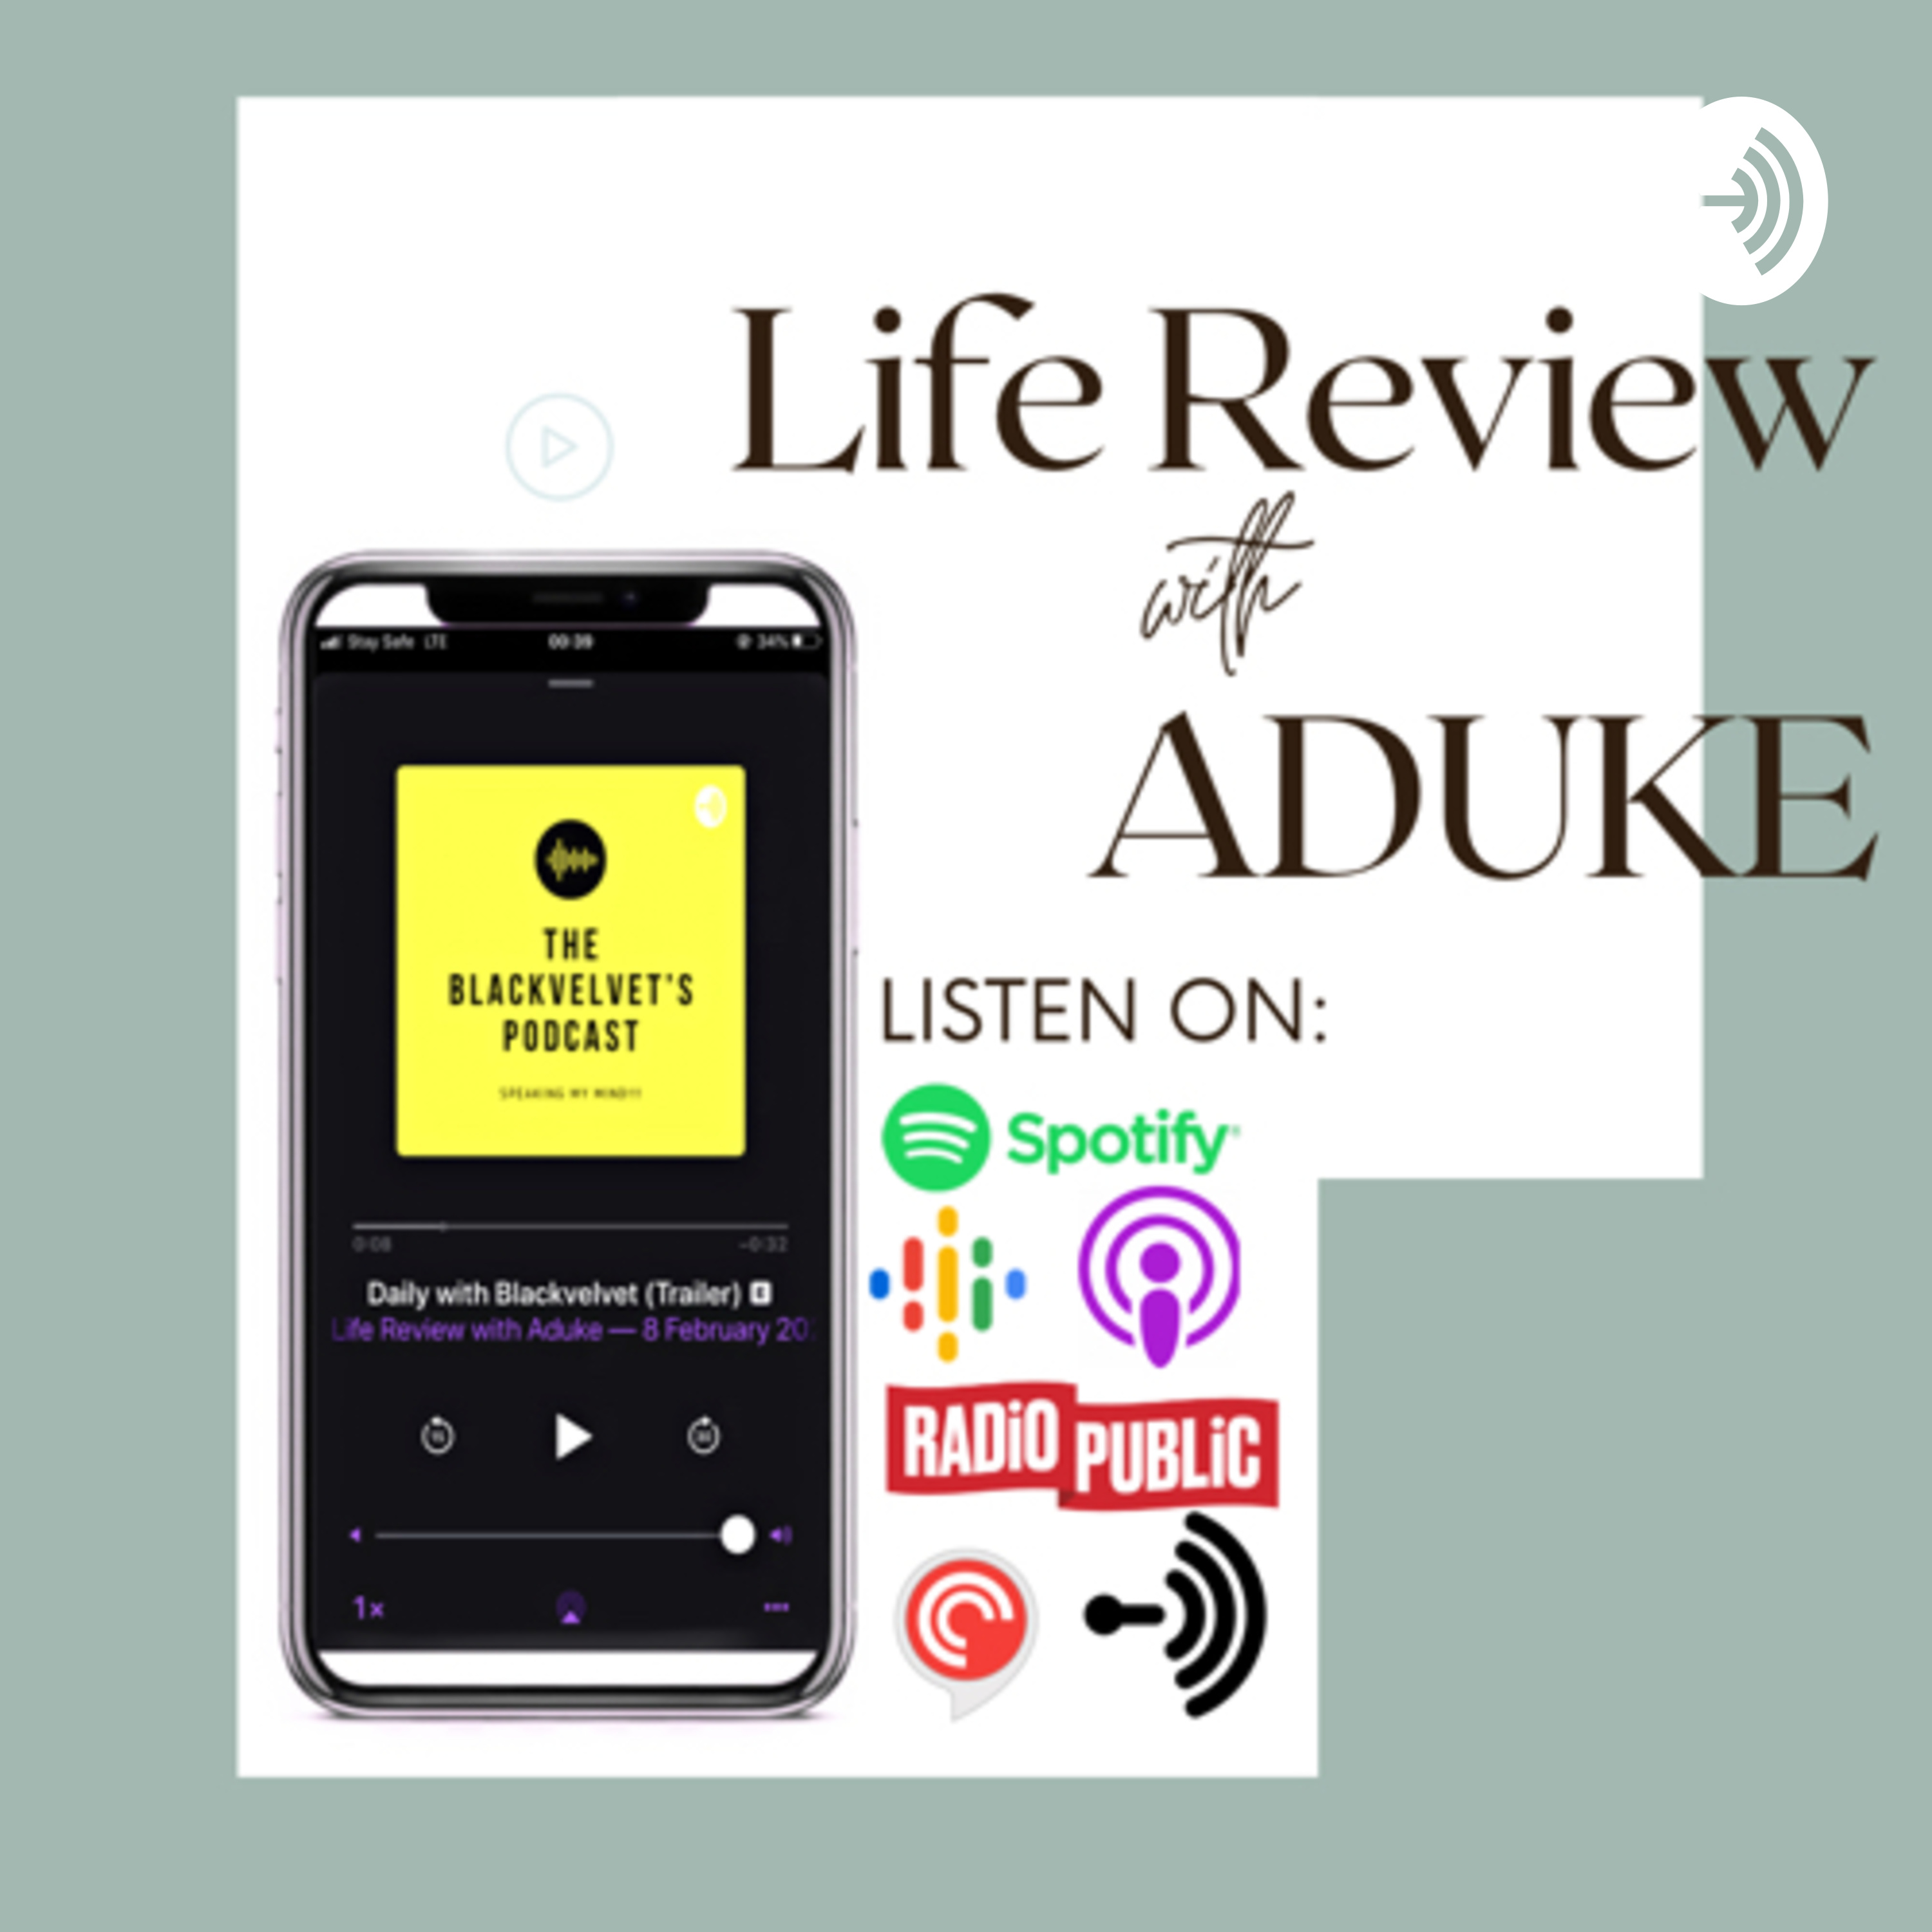 Life Review with Aduke